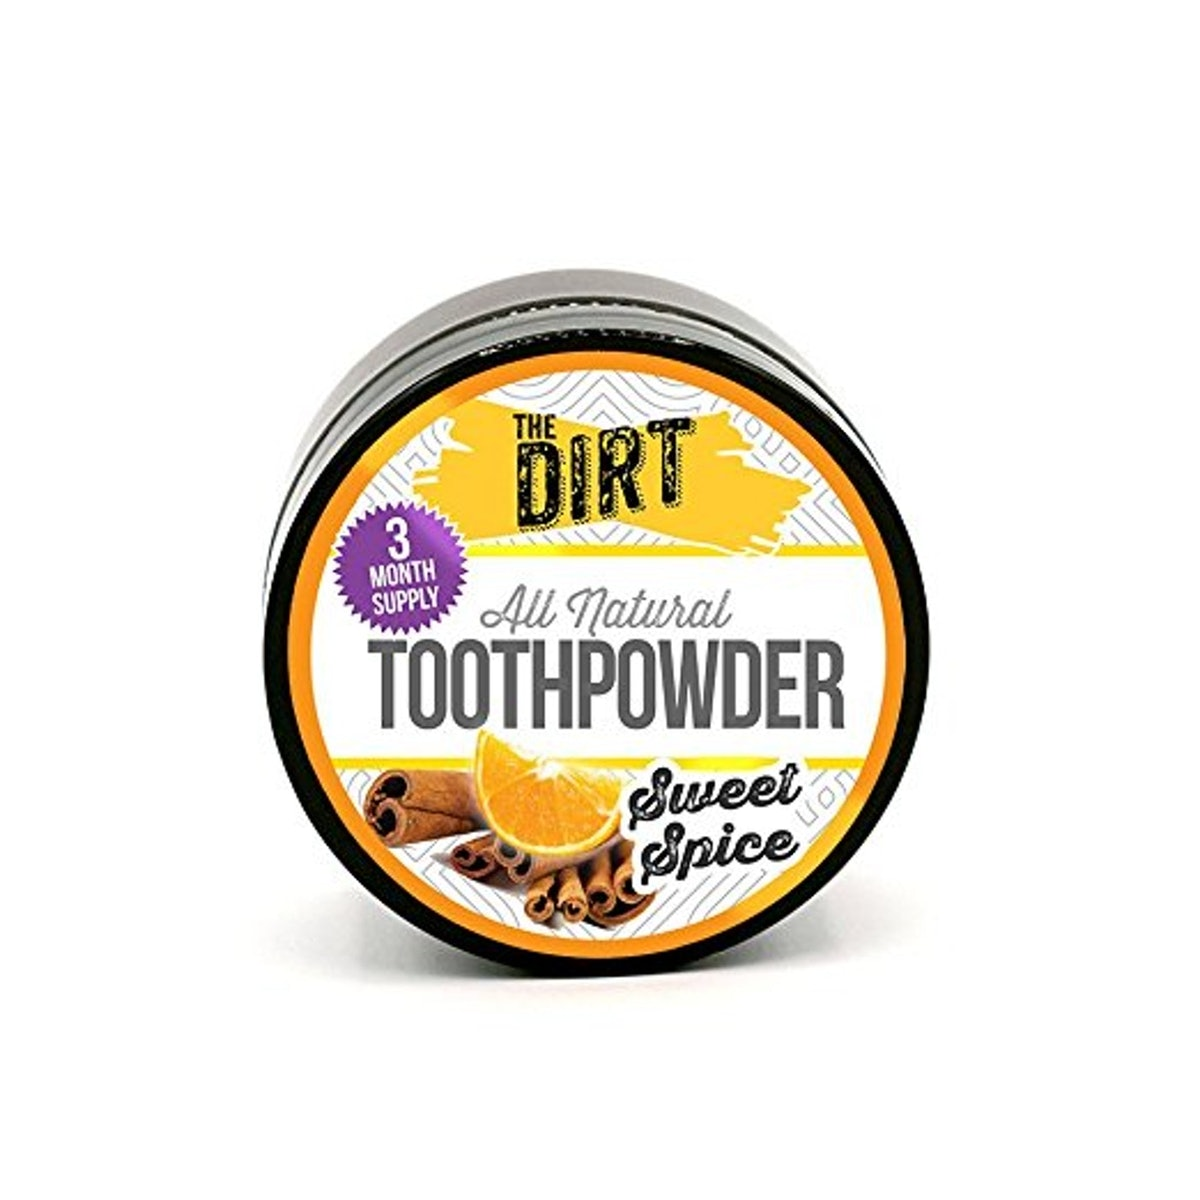 The Dirt All Natural Teeth Whitening Powder